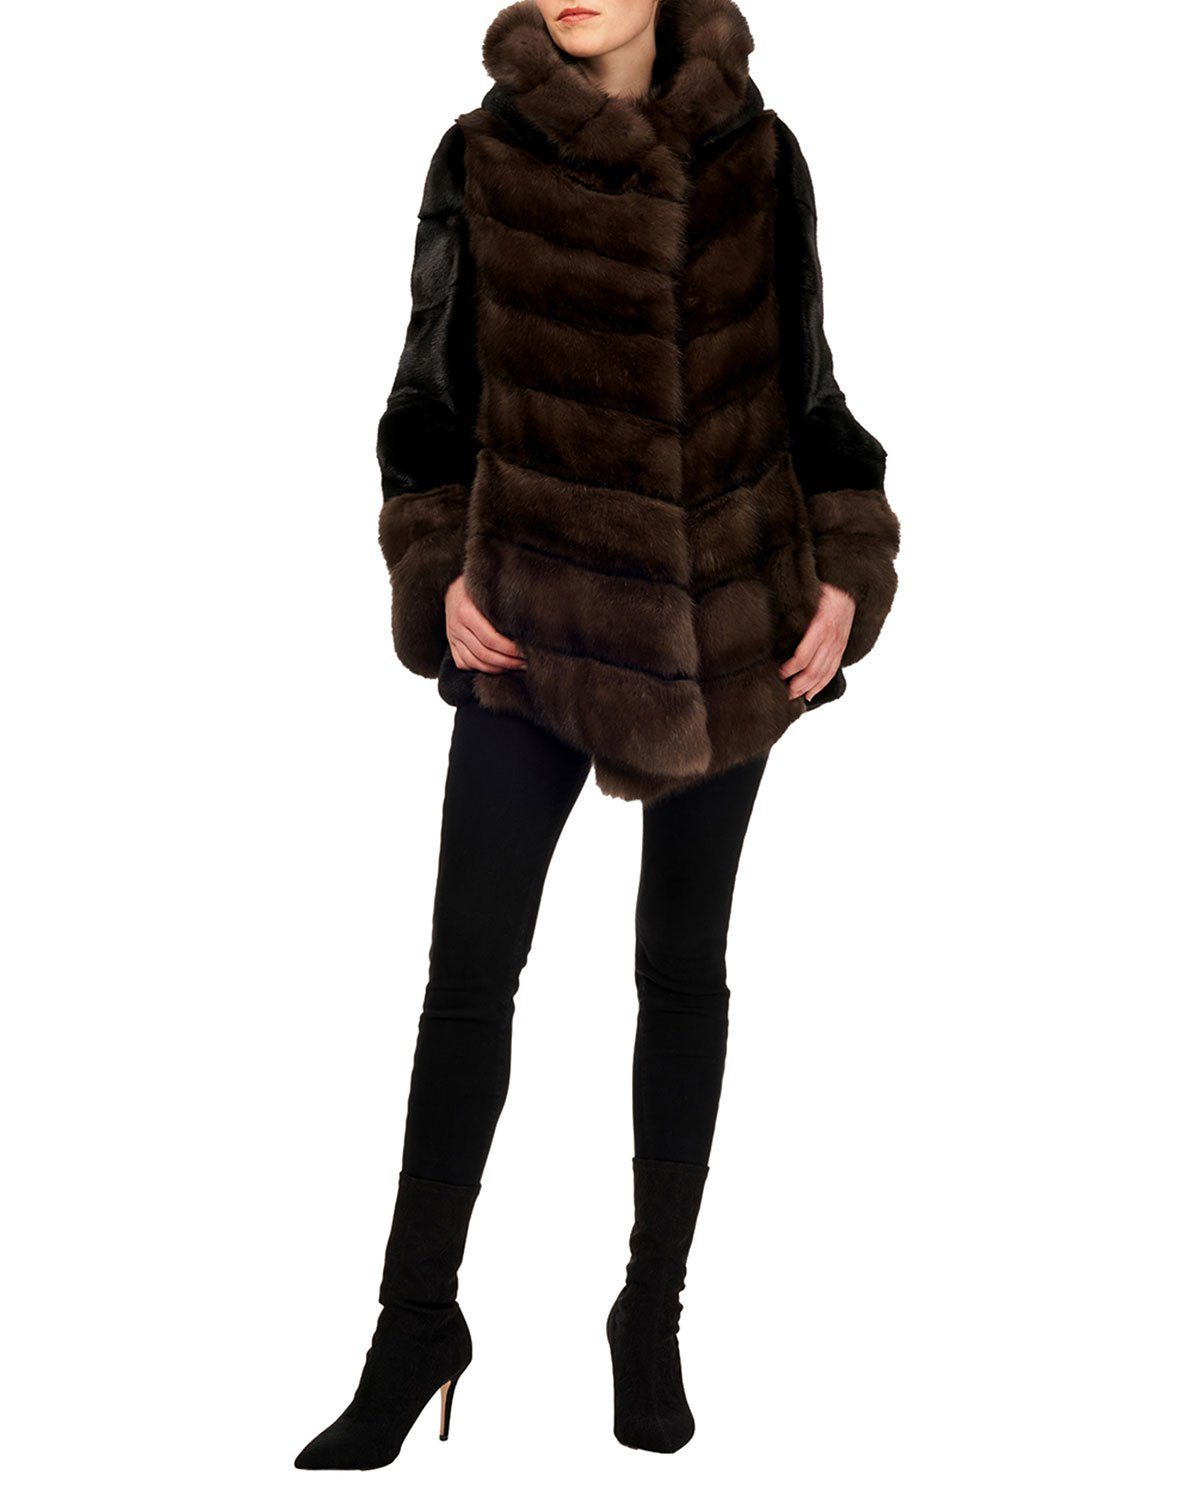 Steven Dann Sable & Mink Chevron Jacket